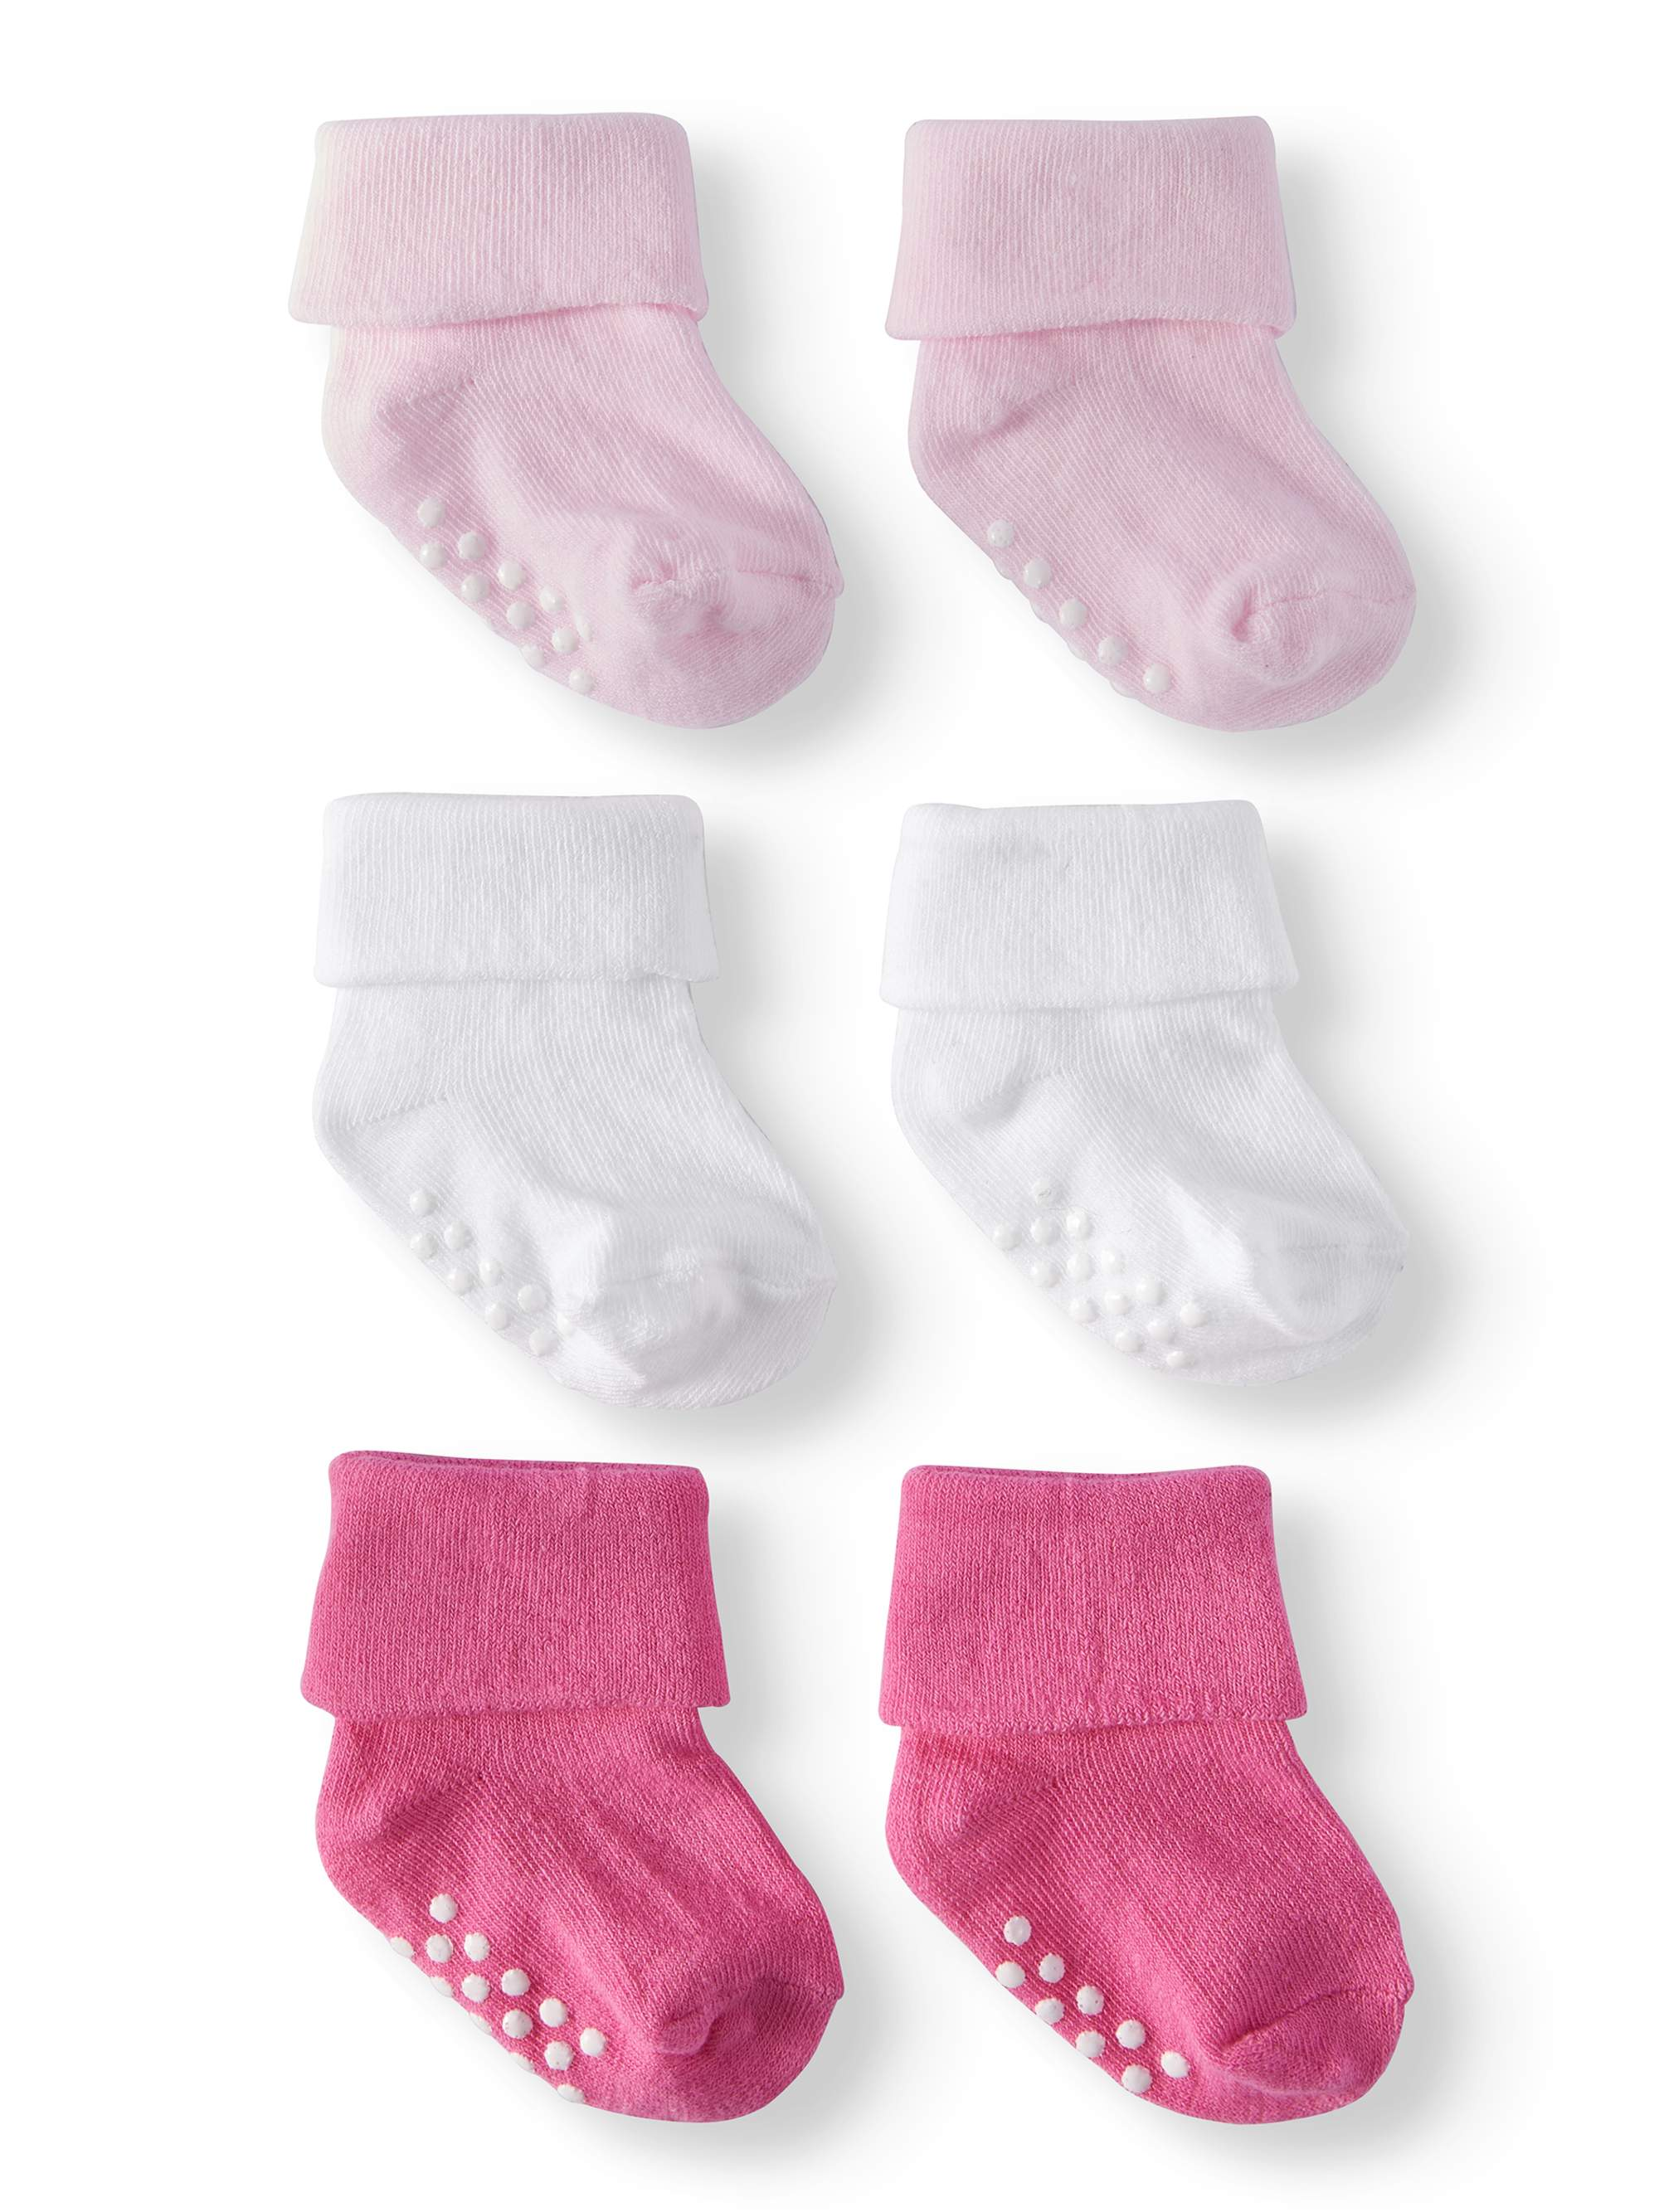 Non-Skid Turn Cuff Socks, 3-pack (Baby Boys or Baby Girls Unisex)